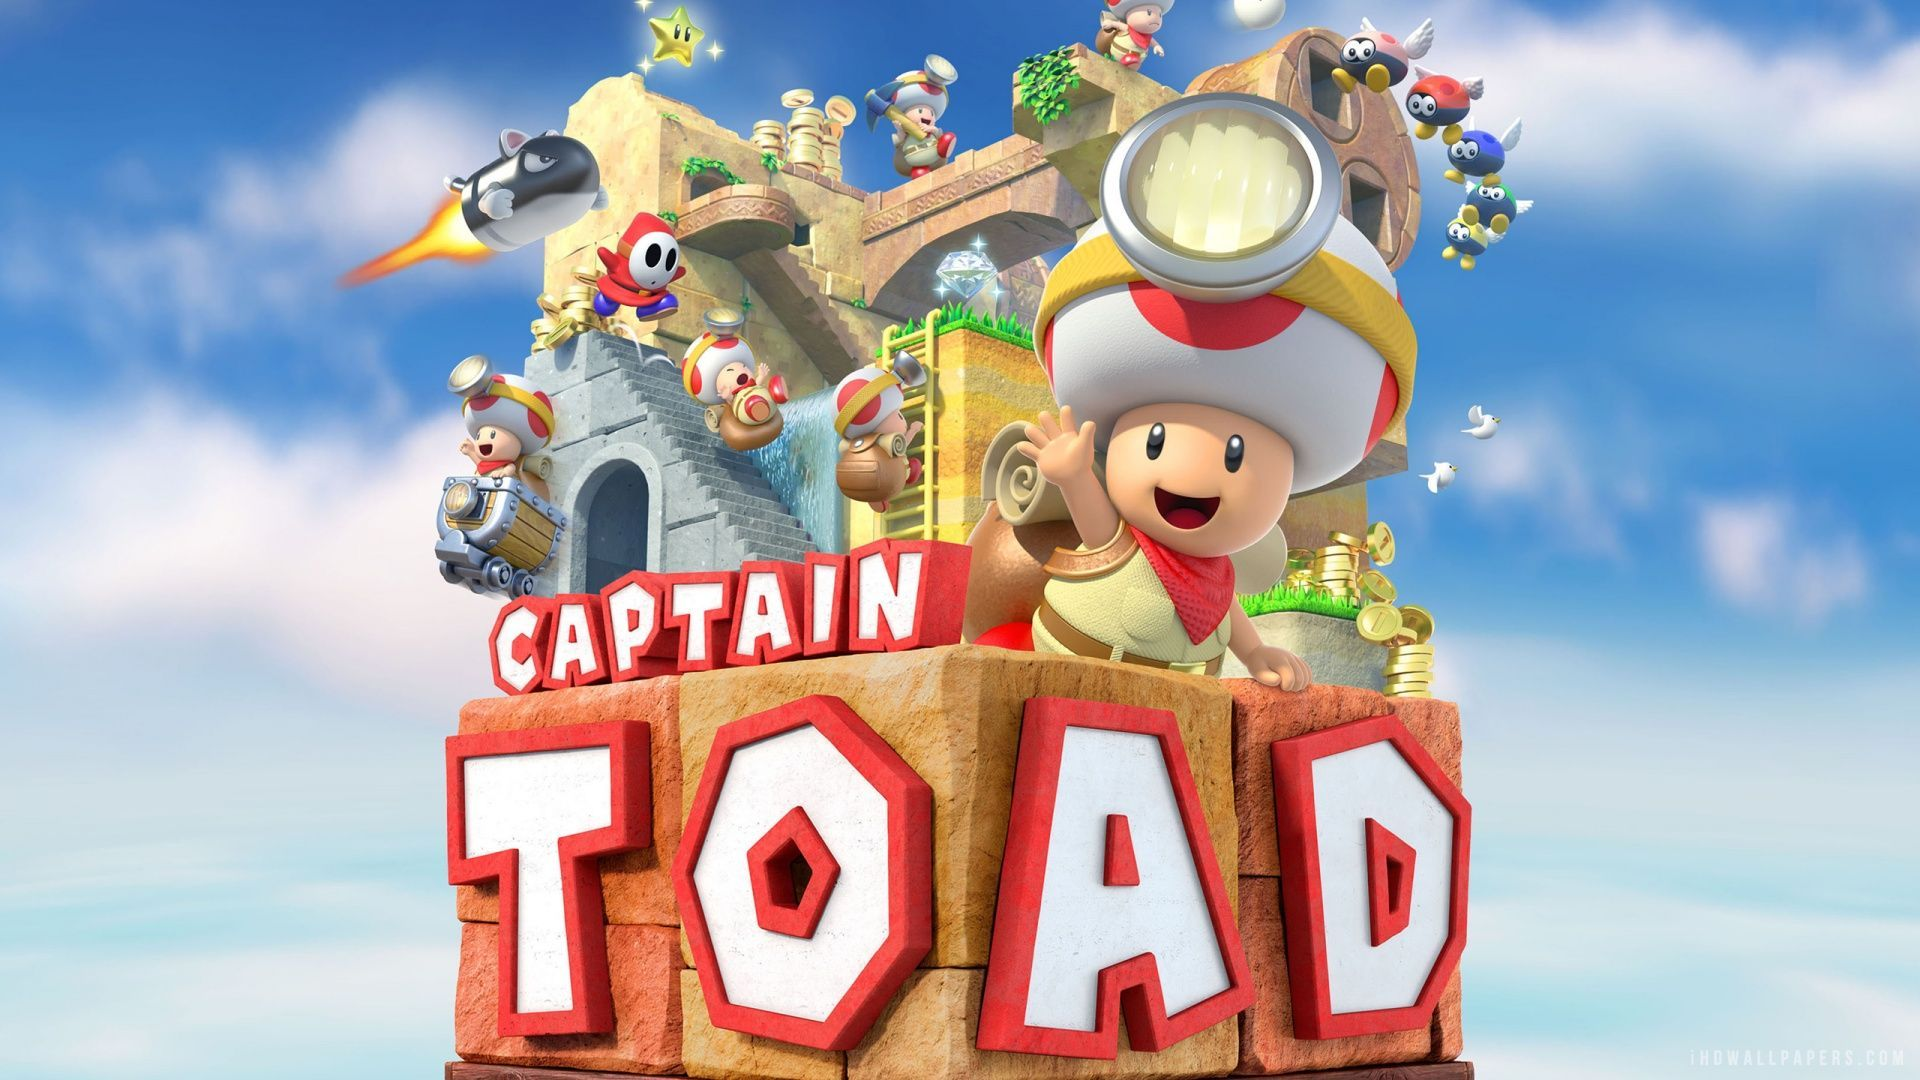 1920x1080 Captain Toad: Treasure Tracker Wallpapers